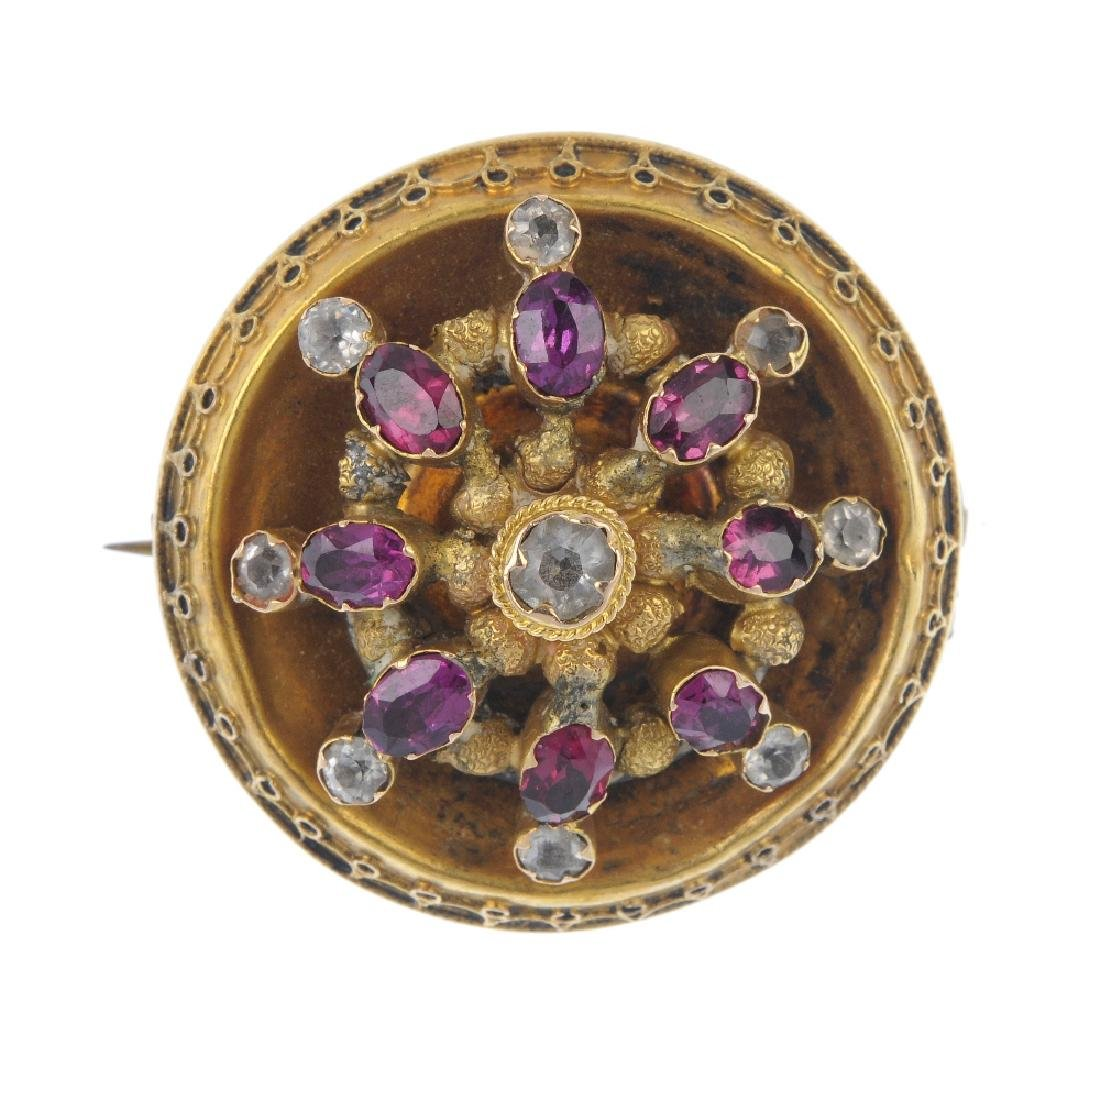 A late Victorian gold gem-set brooch. The